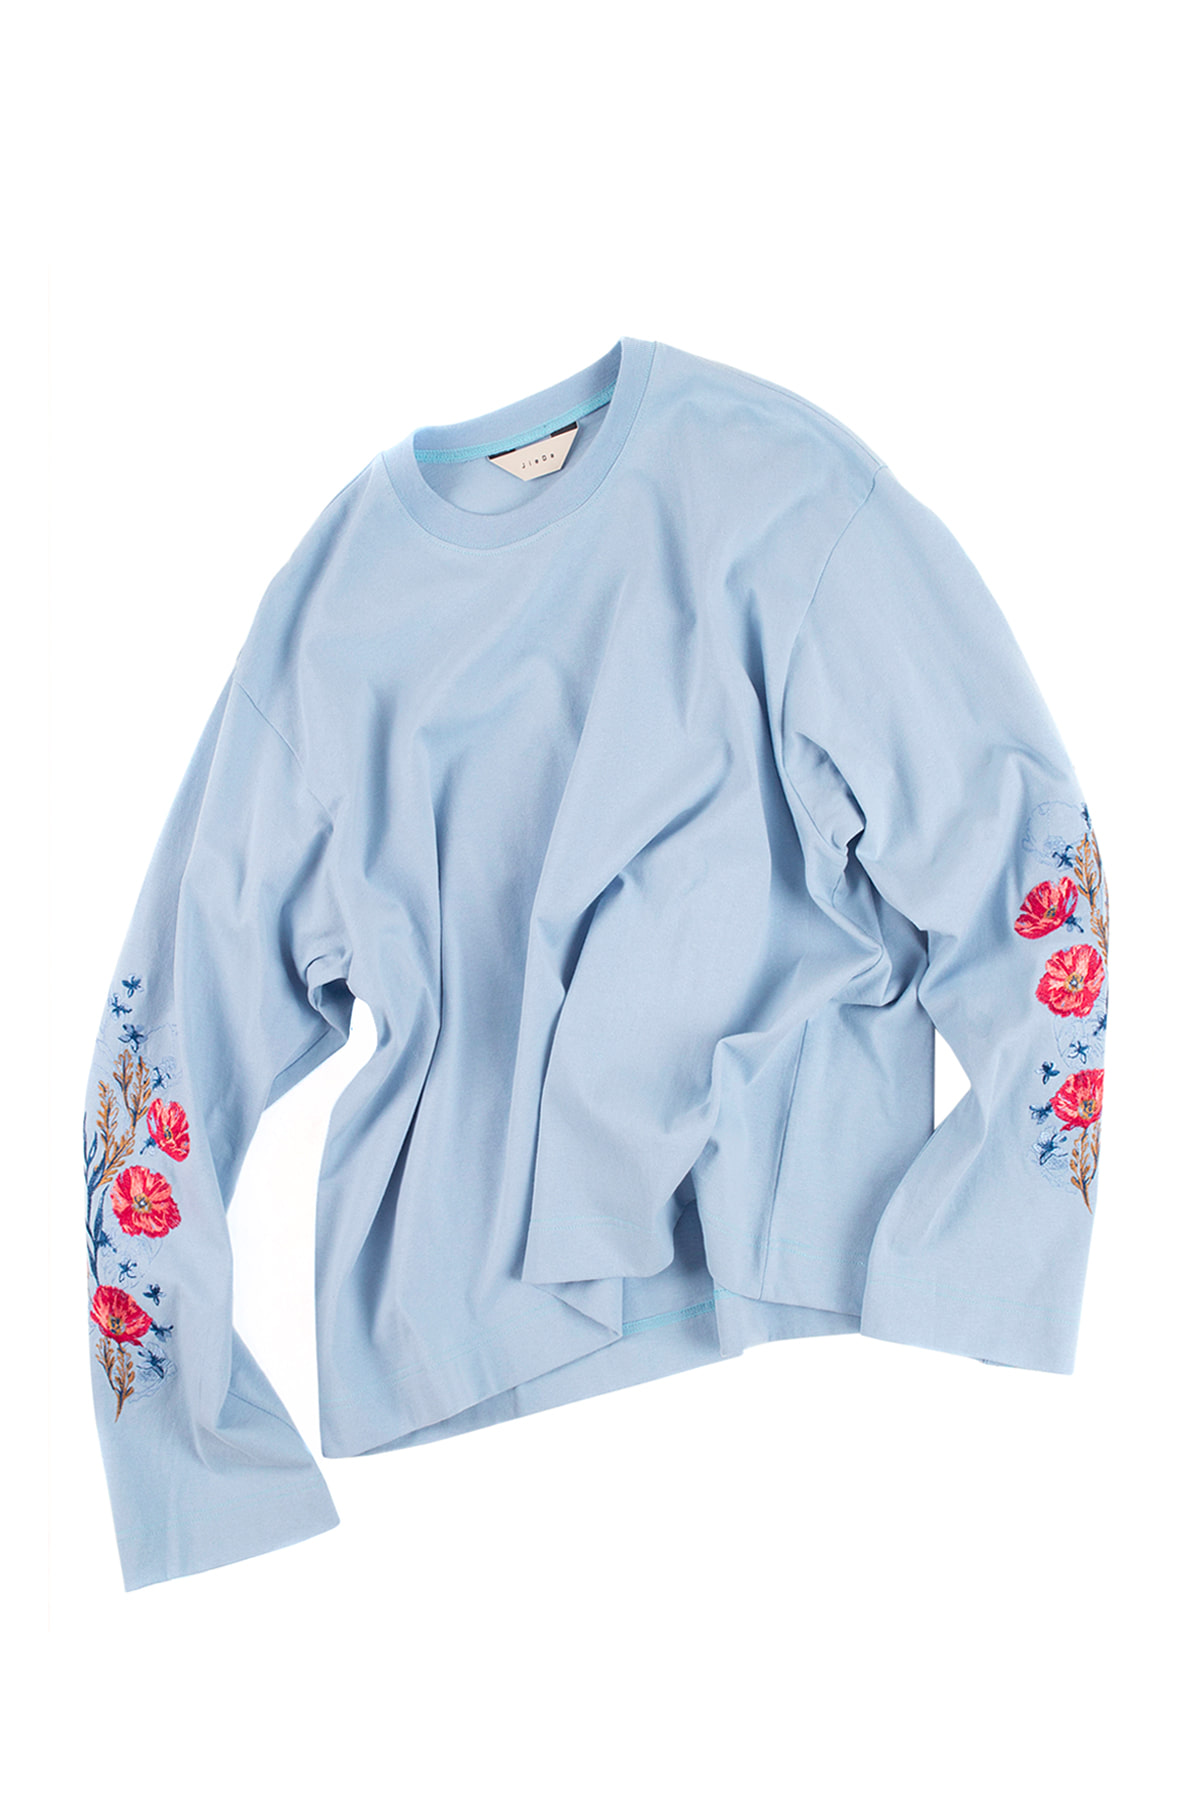 JieDa : Flower Embroiderey L/S (Blue)